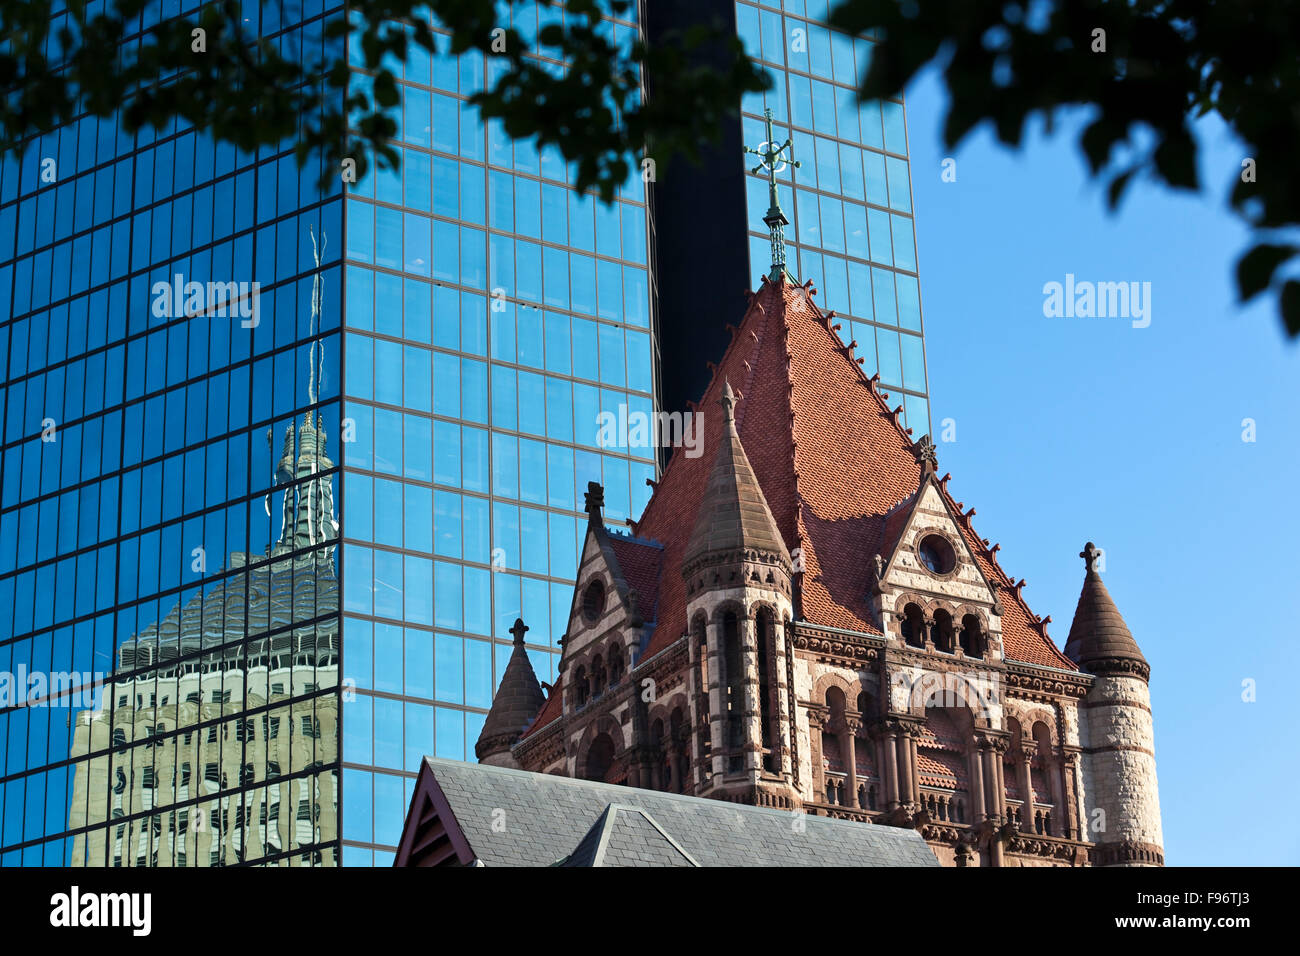 In the foreground is the central tower of Boston's Trinity Church, a National Historic Landmark located in Copley - Stock Image